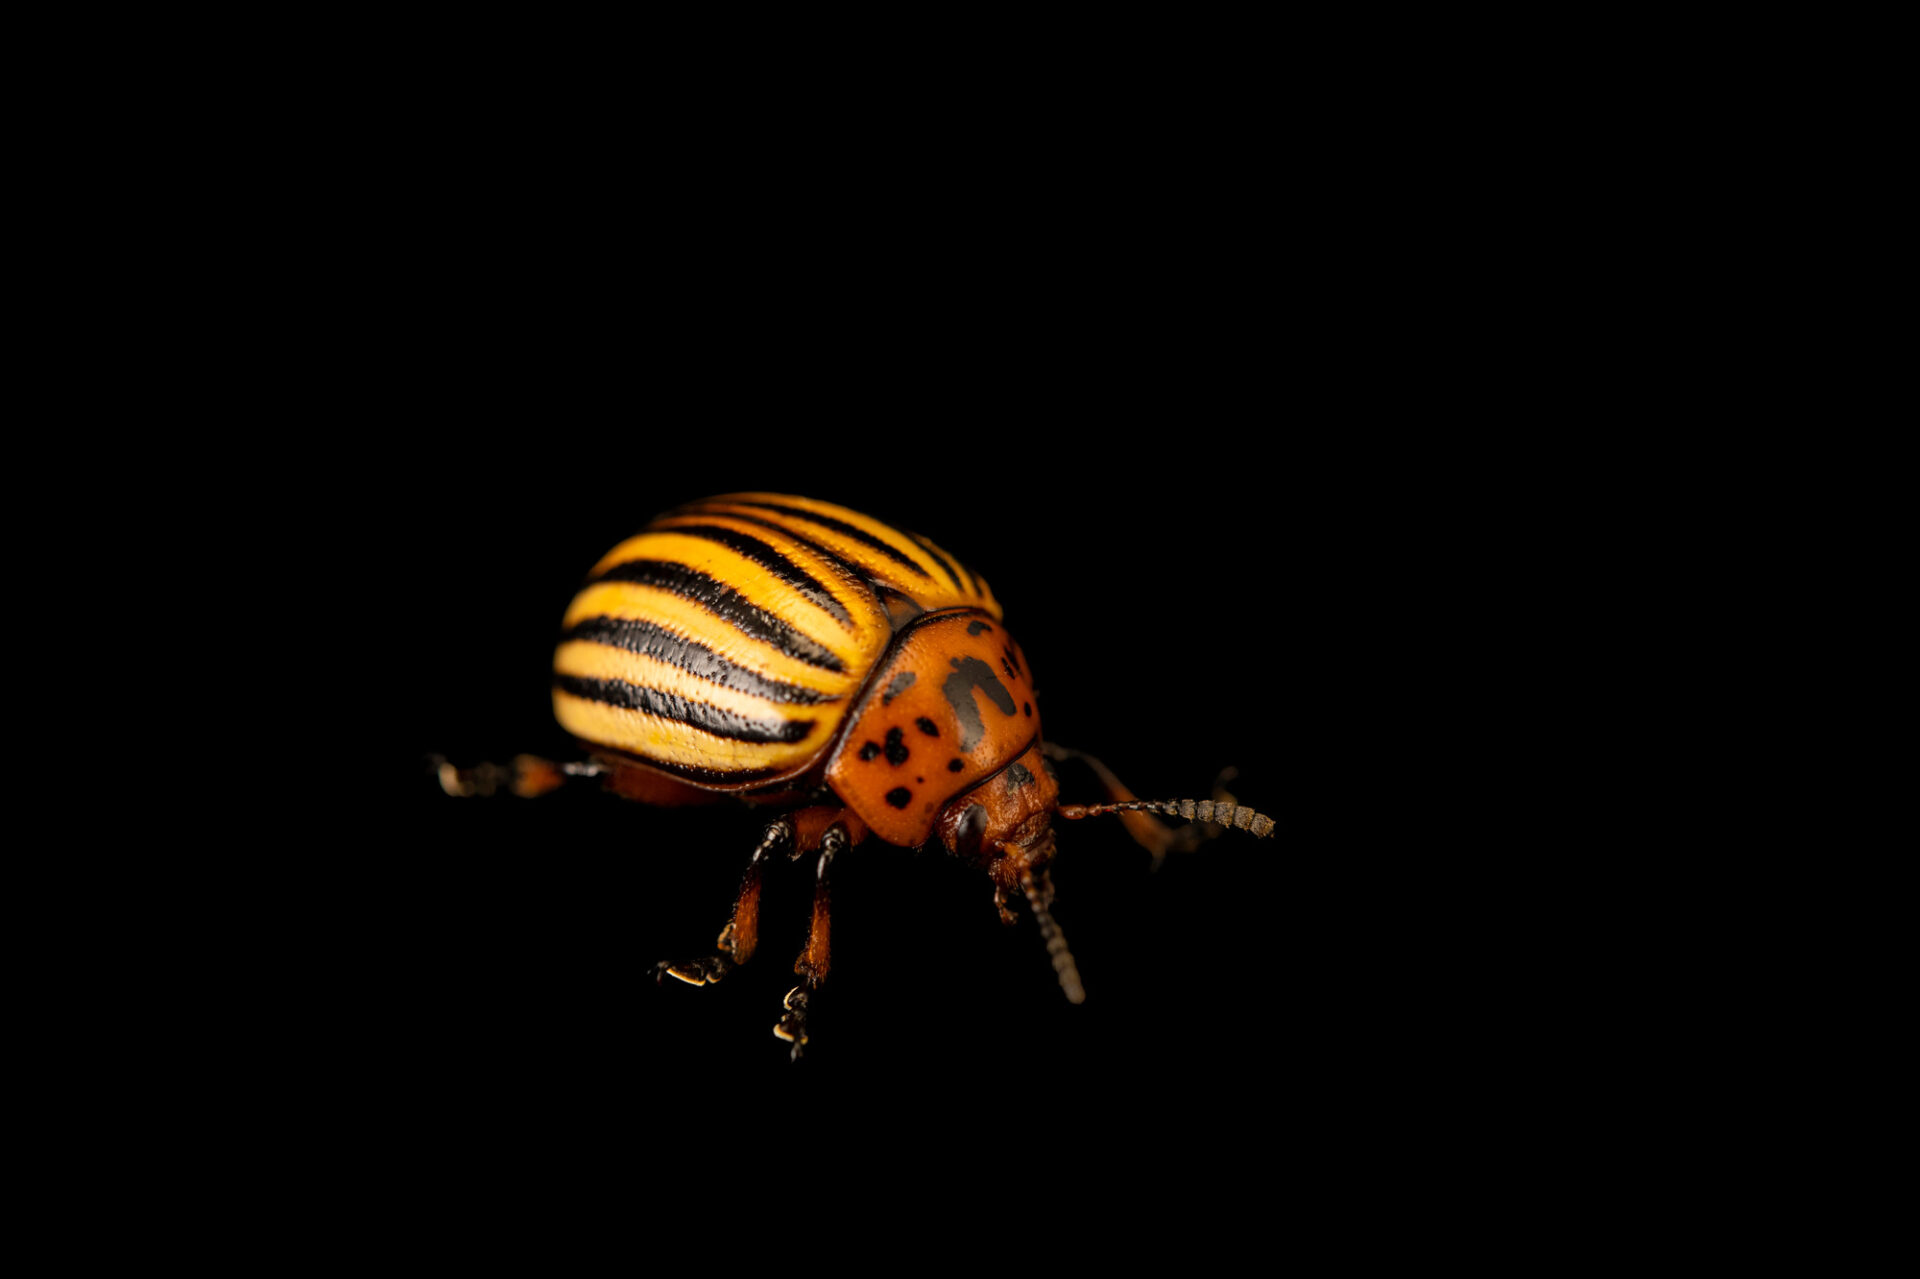 Photo: A Colorado potato beetle (Leptinotarsa decemlineata) at the St. Louis Zoo.